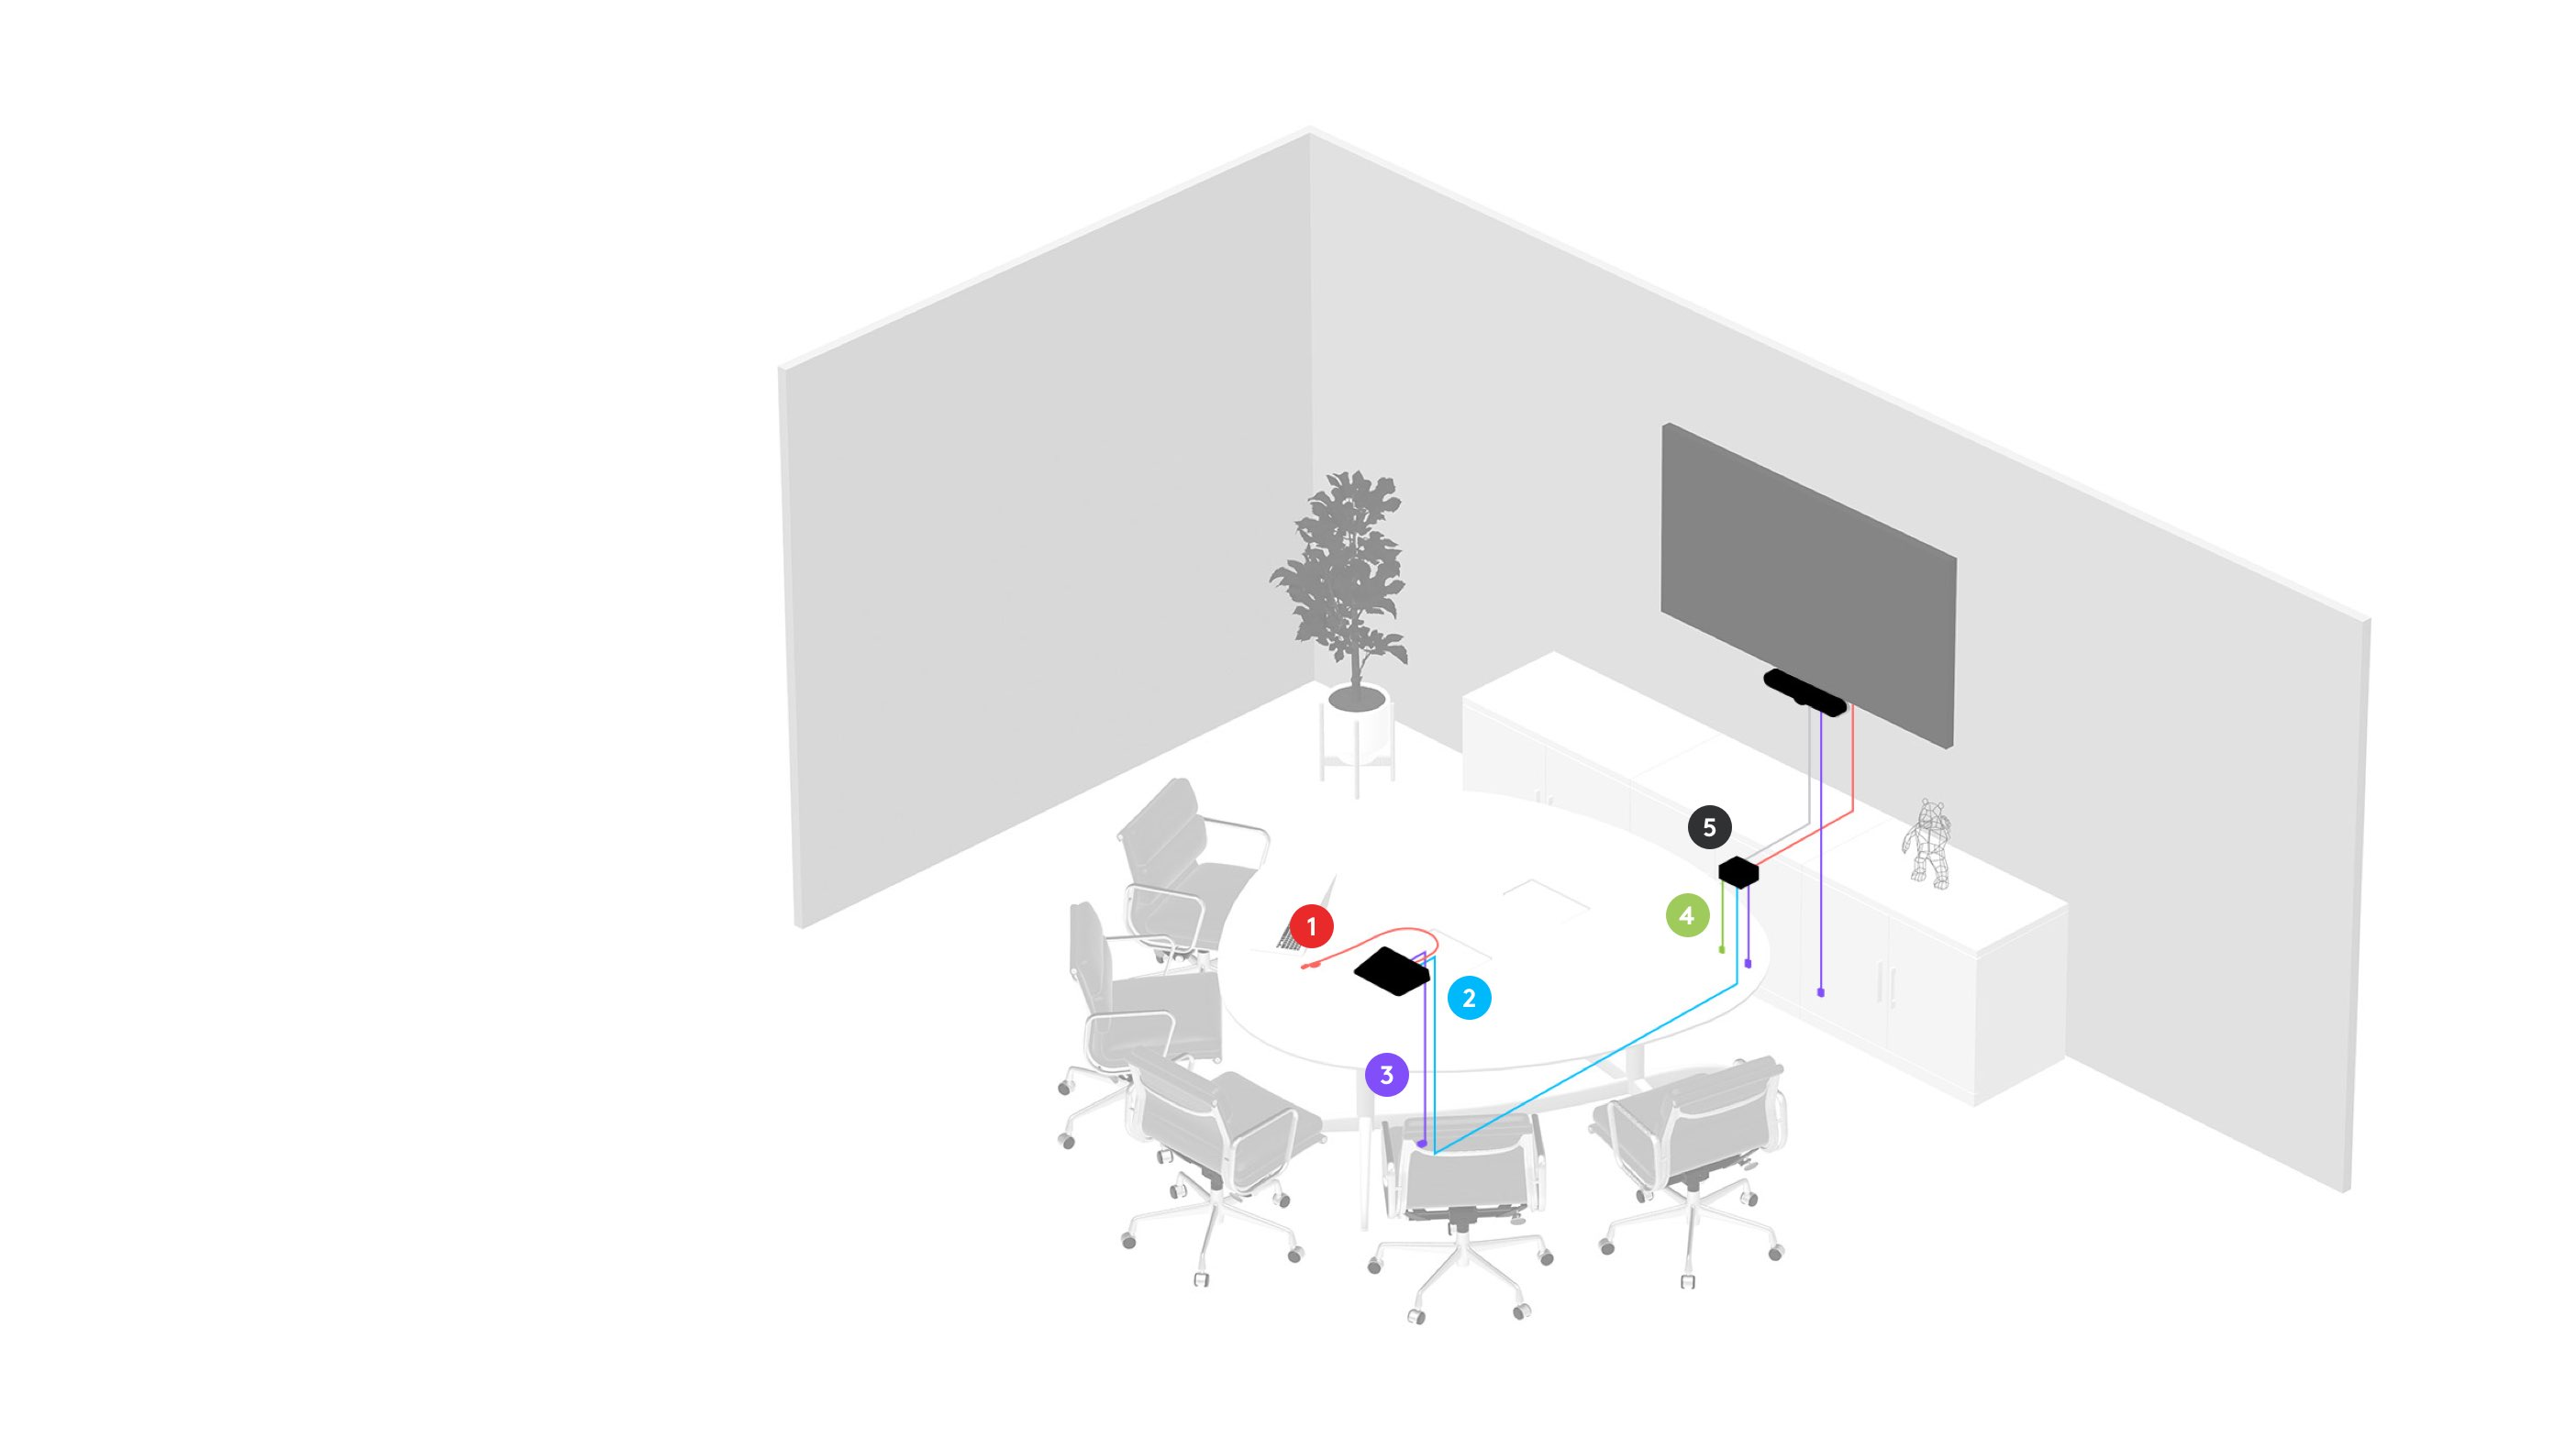 Logitech Tap Microsoft Teams Room for Small/Huddle Room Solution